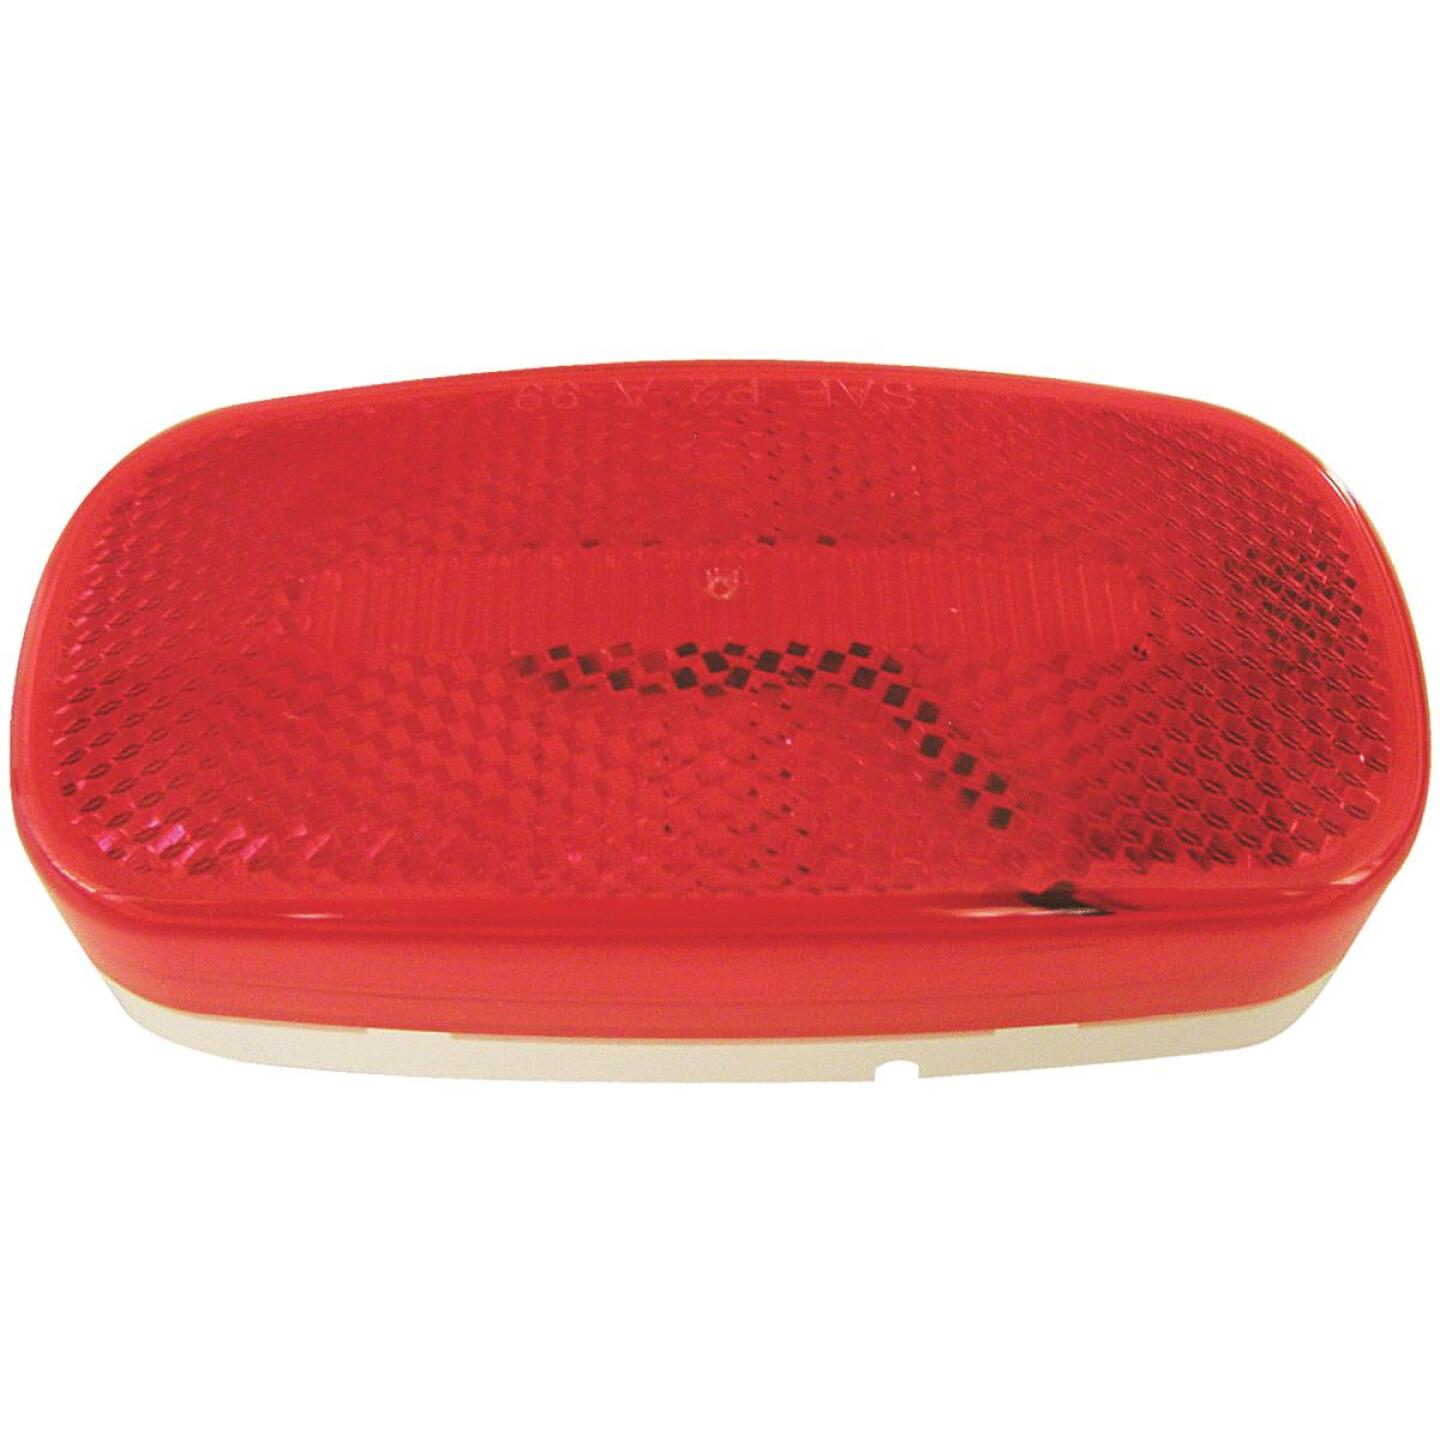 Peterson Oblong Red Clearance Light Image 1